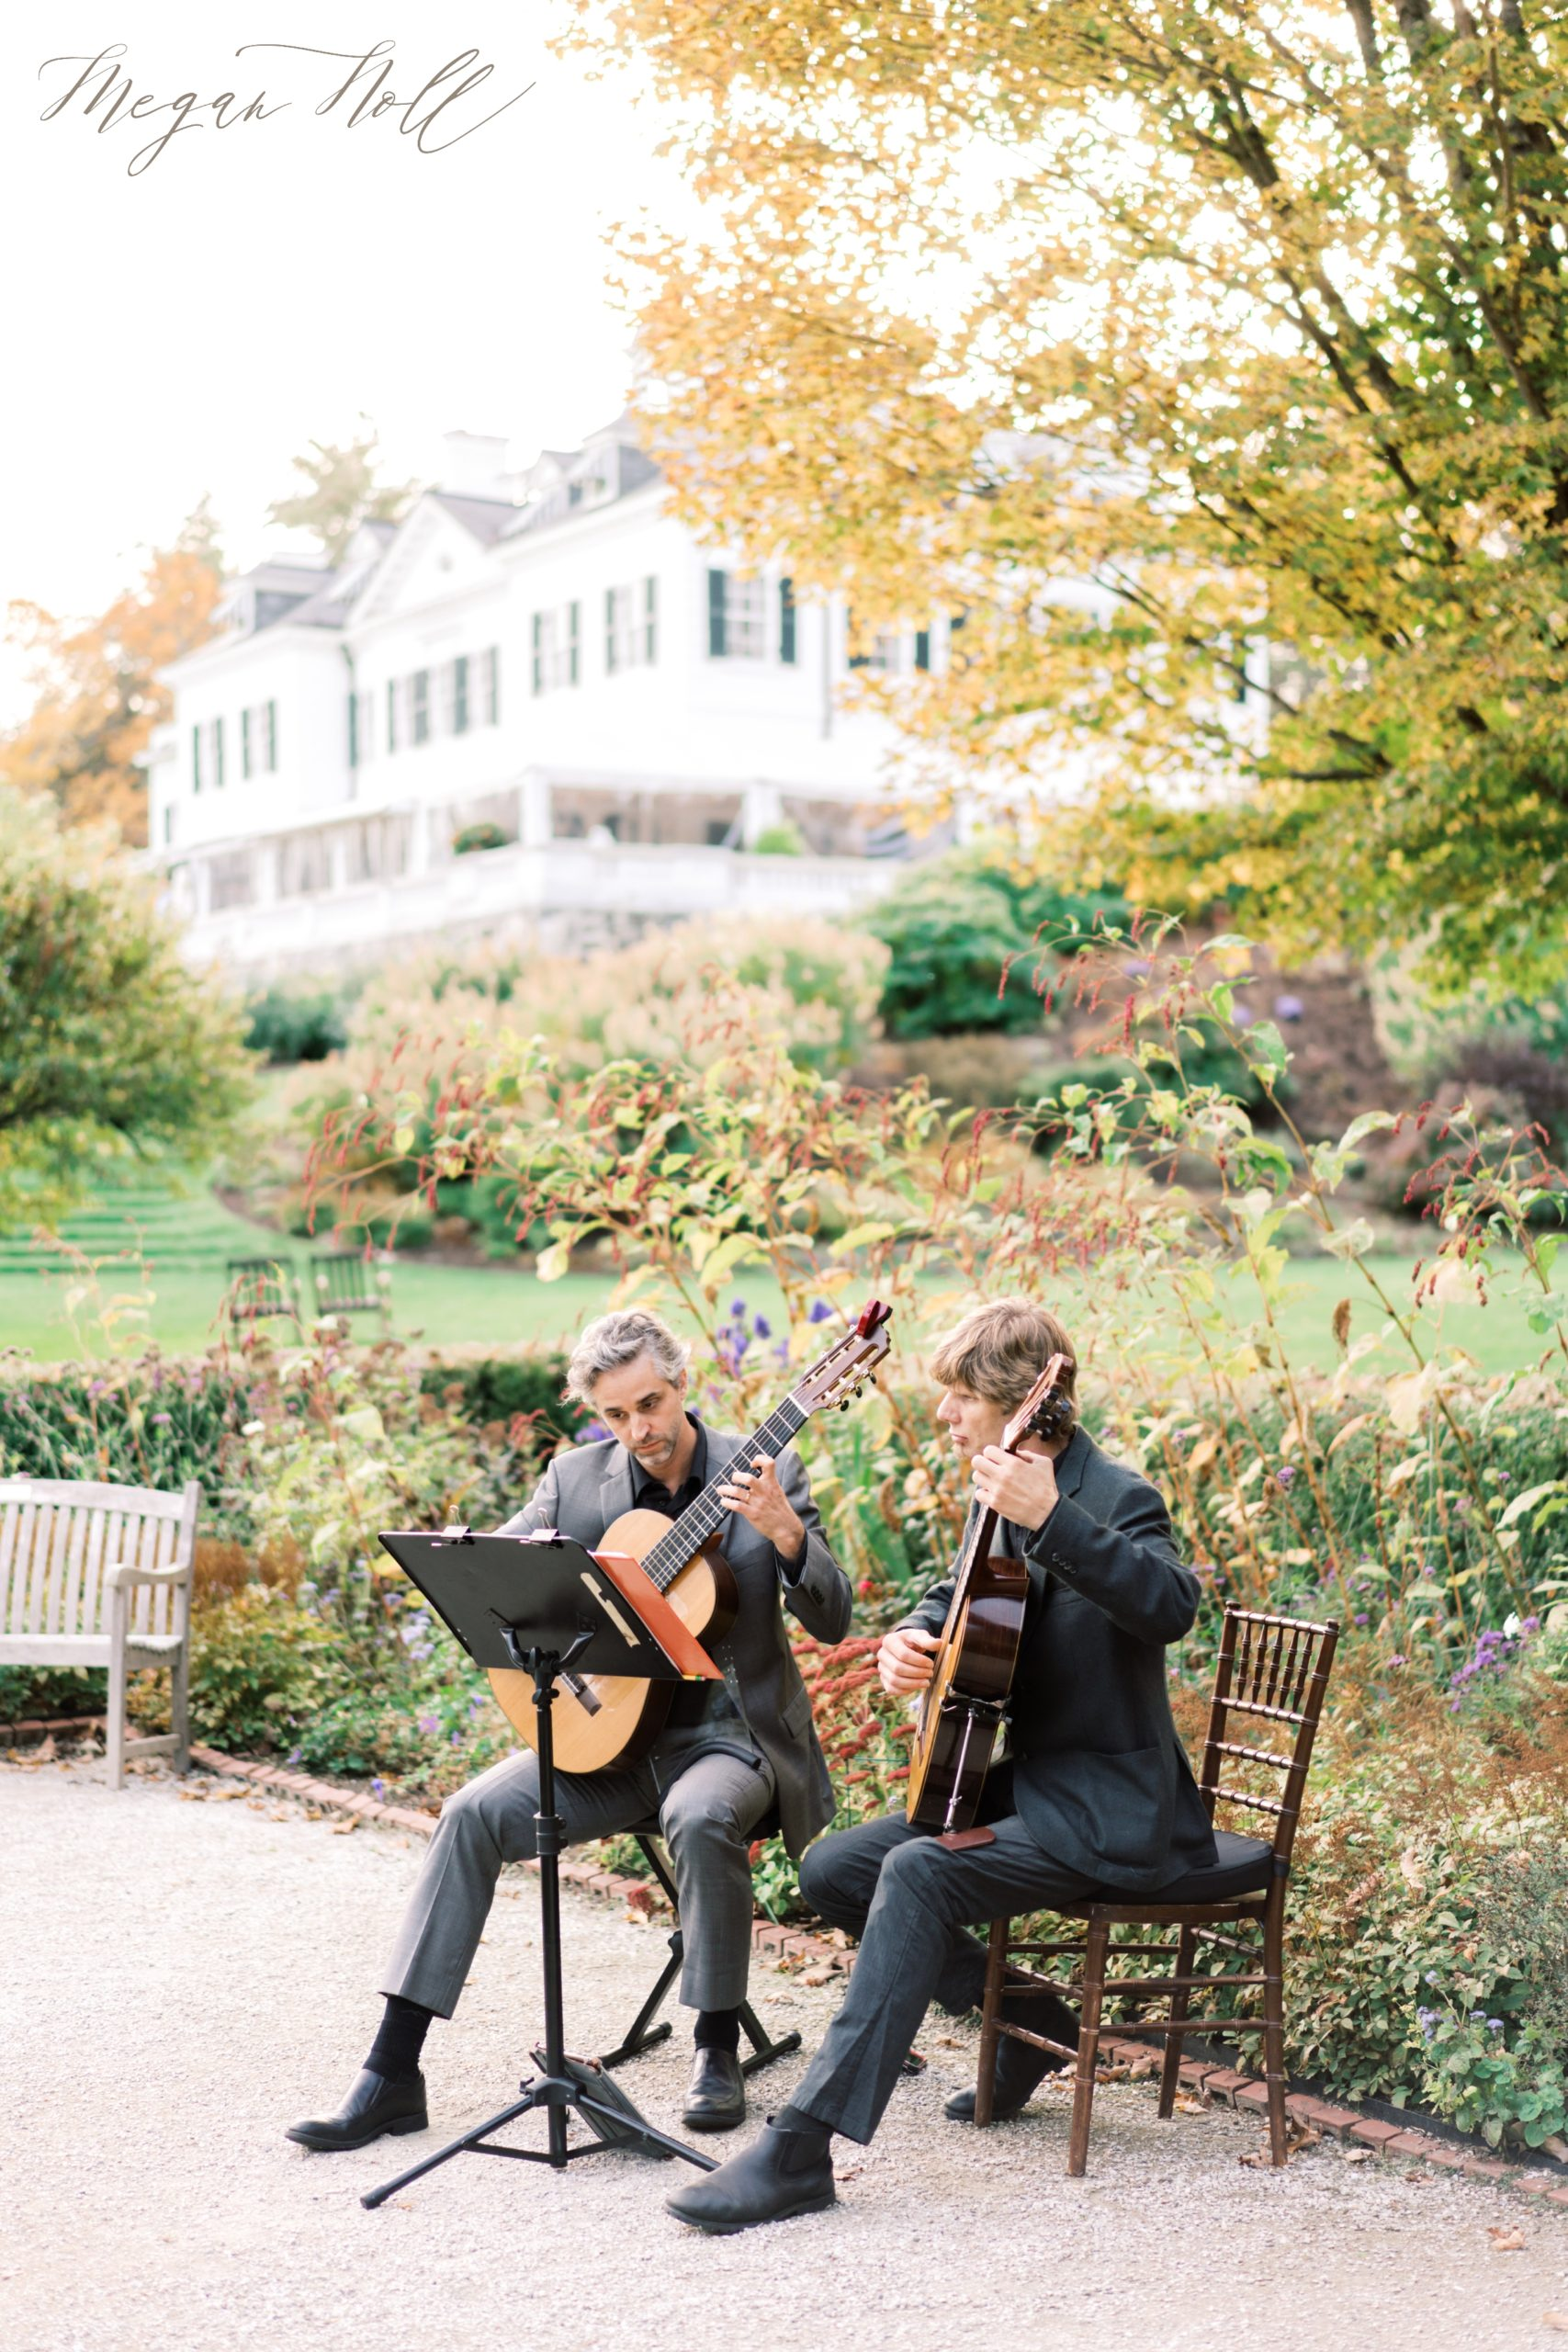 Jon Suters Musicans play for wedding ceremony in Massachusetts